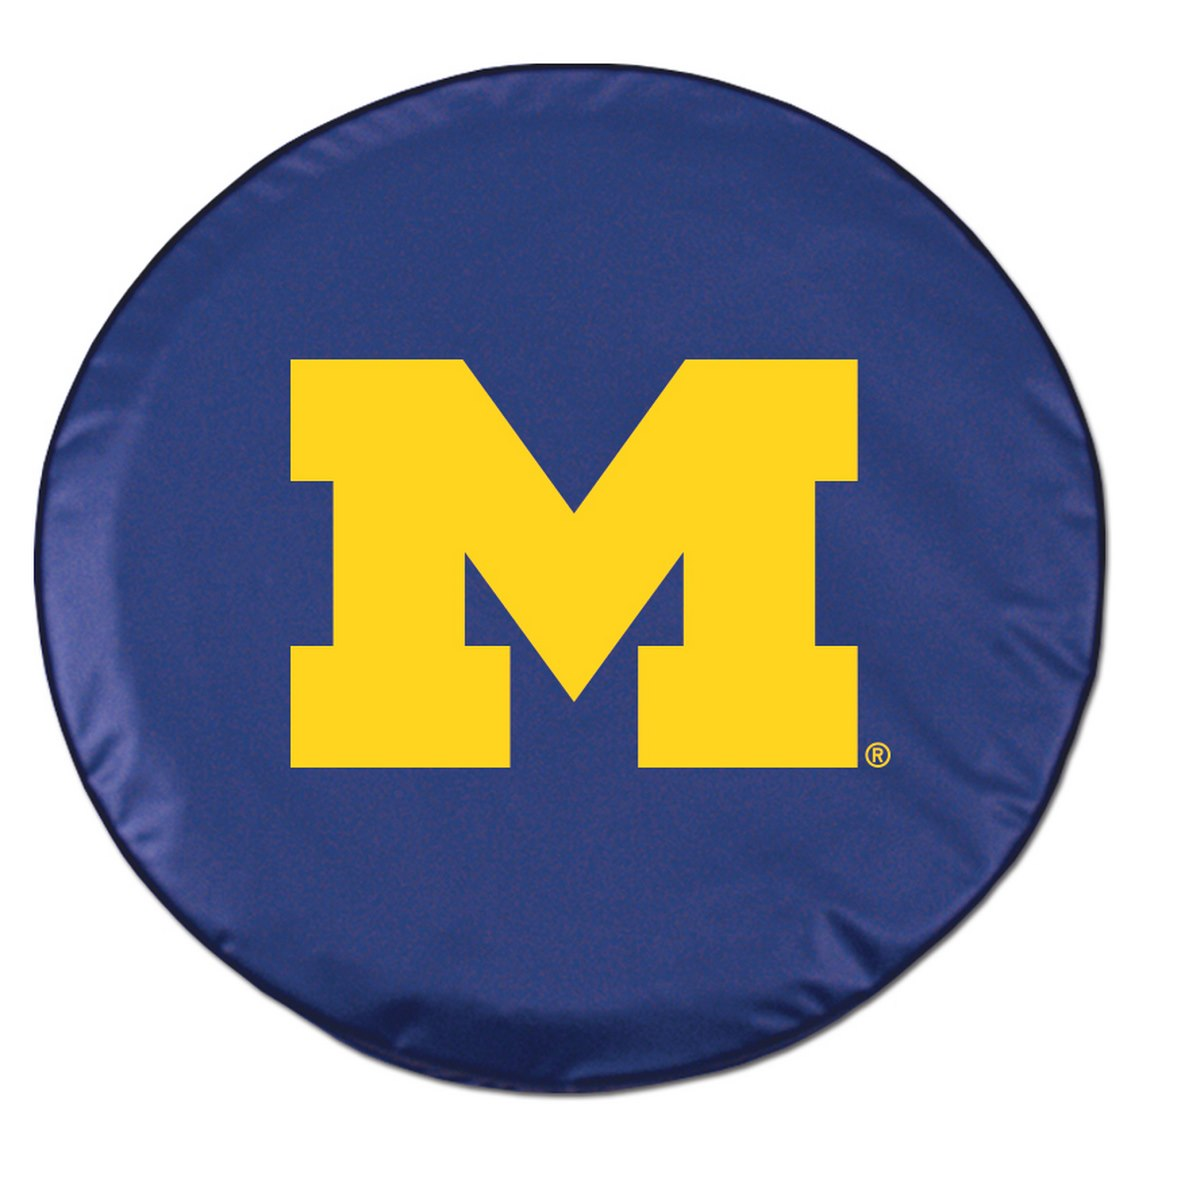 Michigan Tire Cover w/ Wolverines Logo - Blue Vinyl